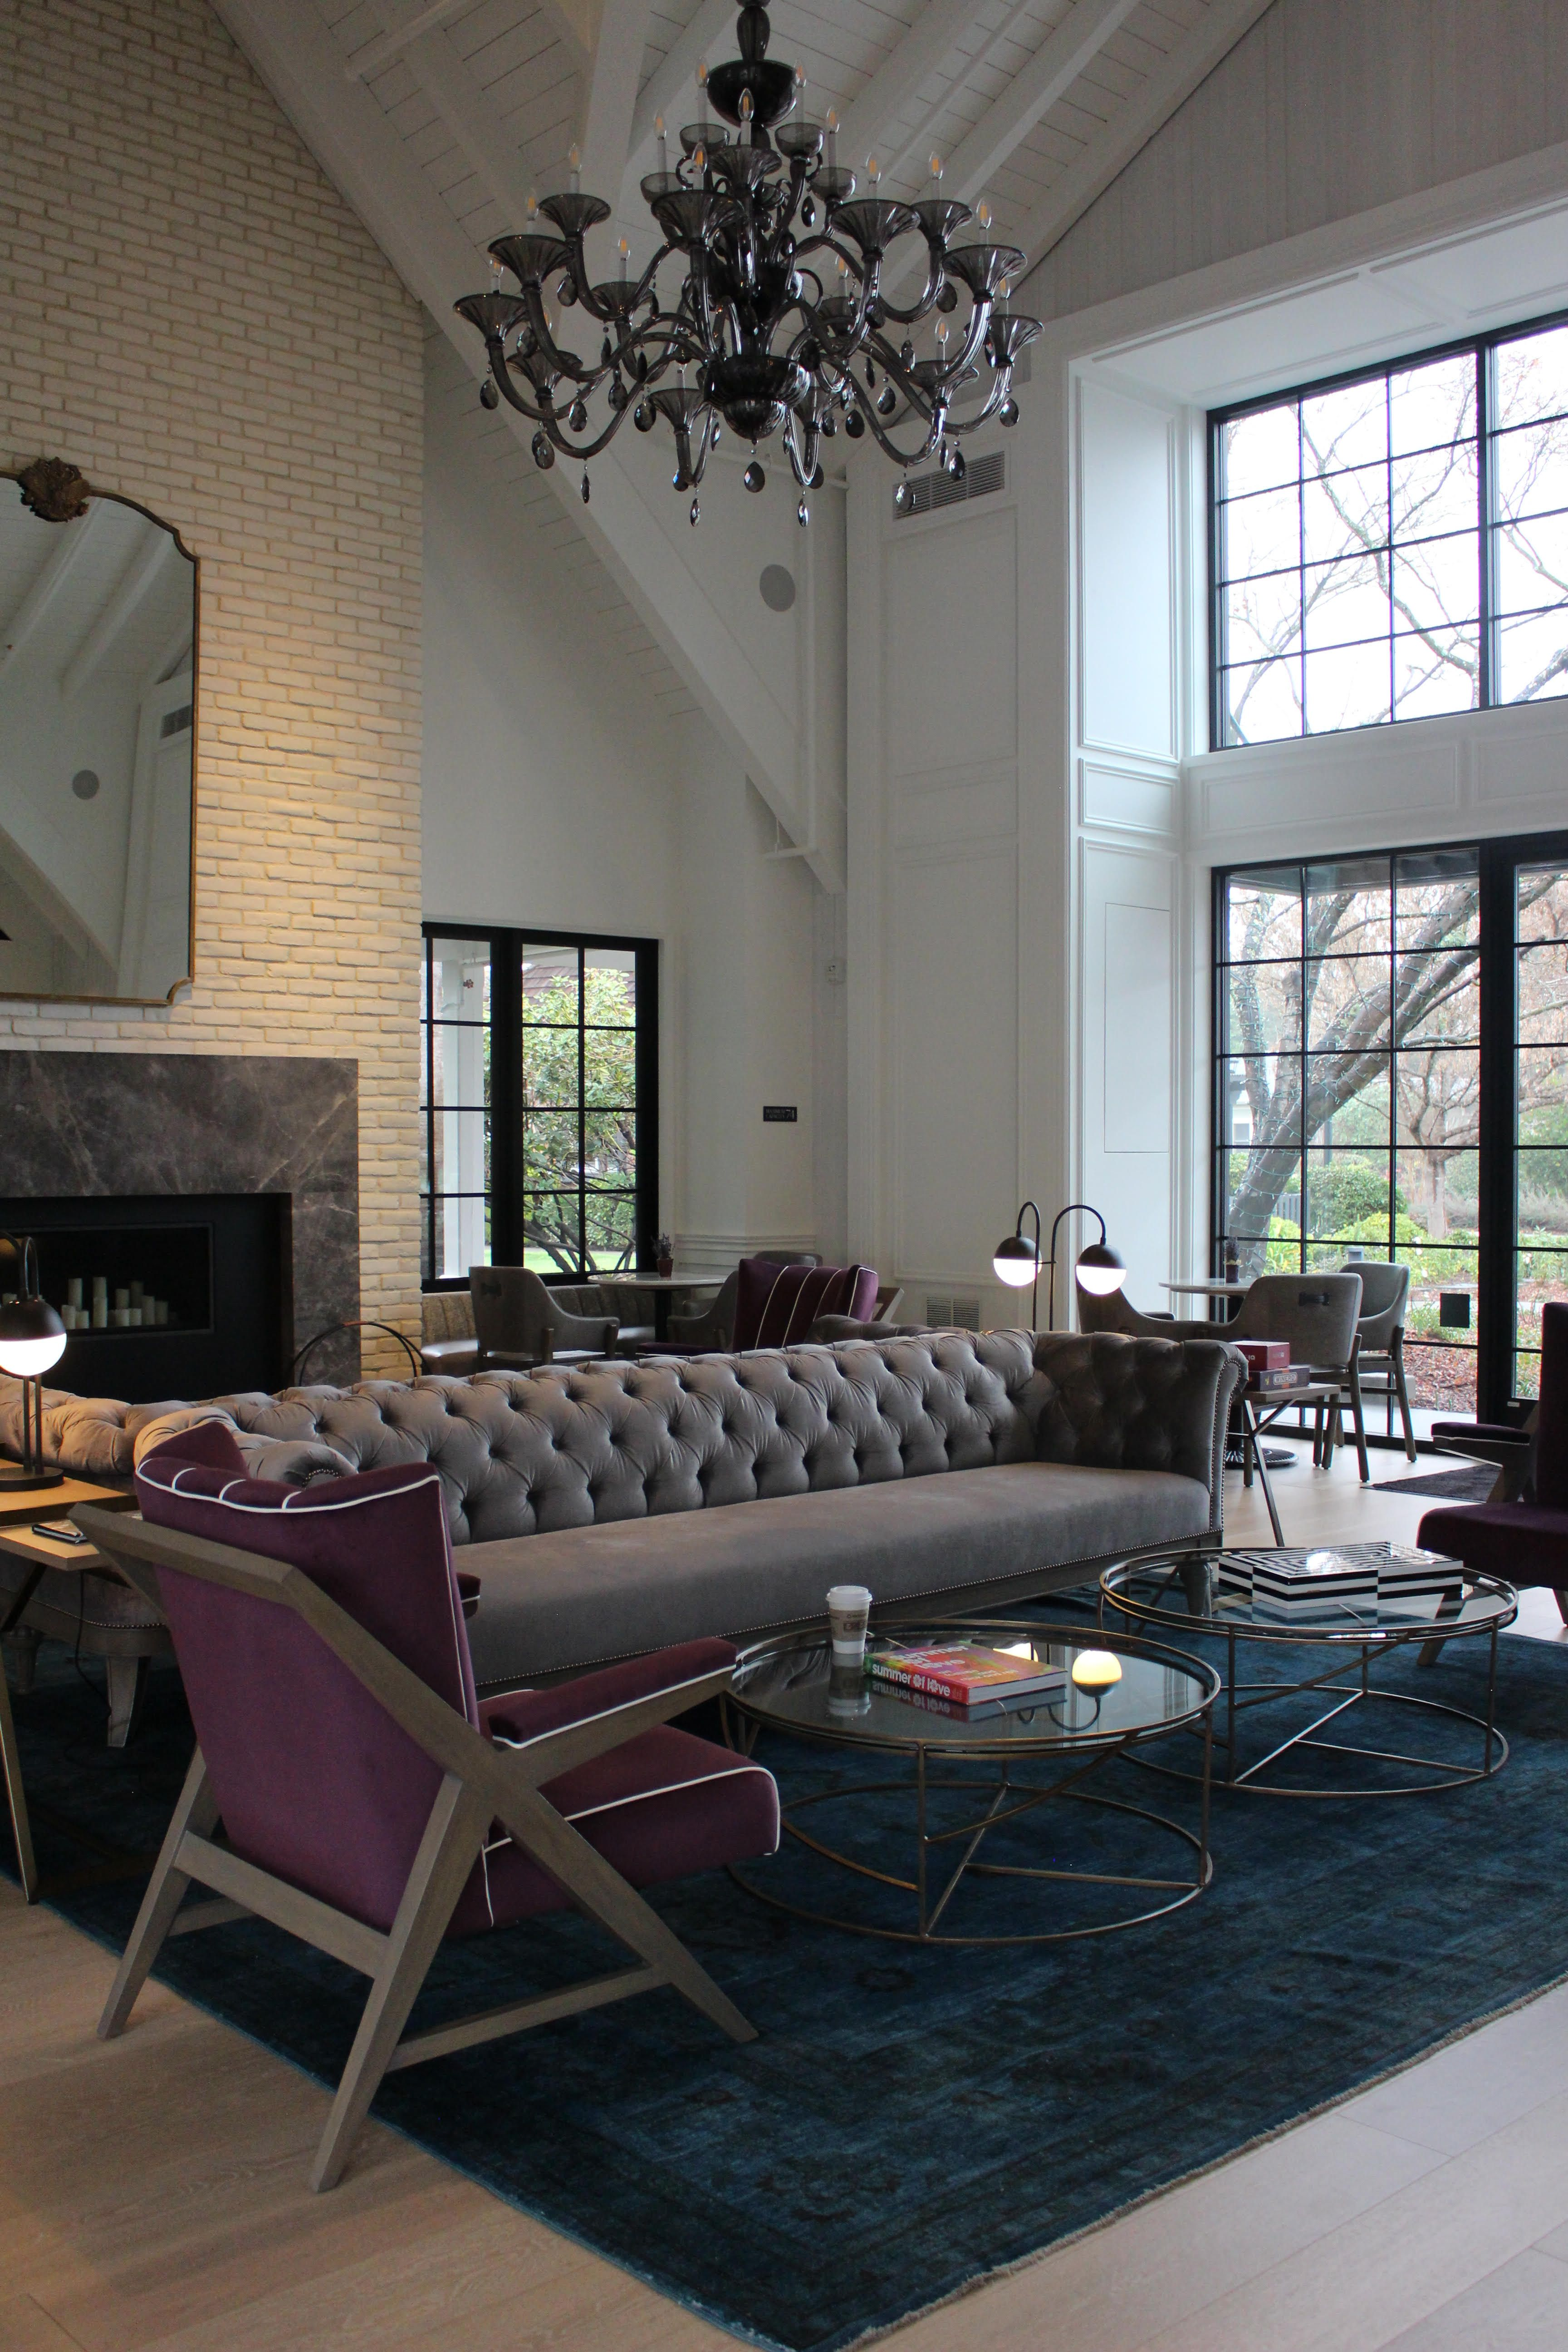 The Fabulous, FarmhouseLuxe Hotel Vintage House in Napa